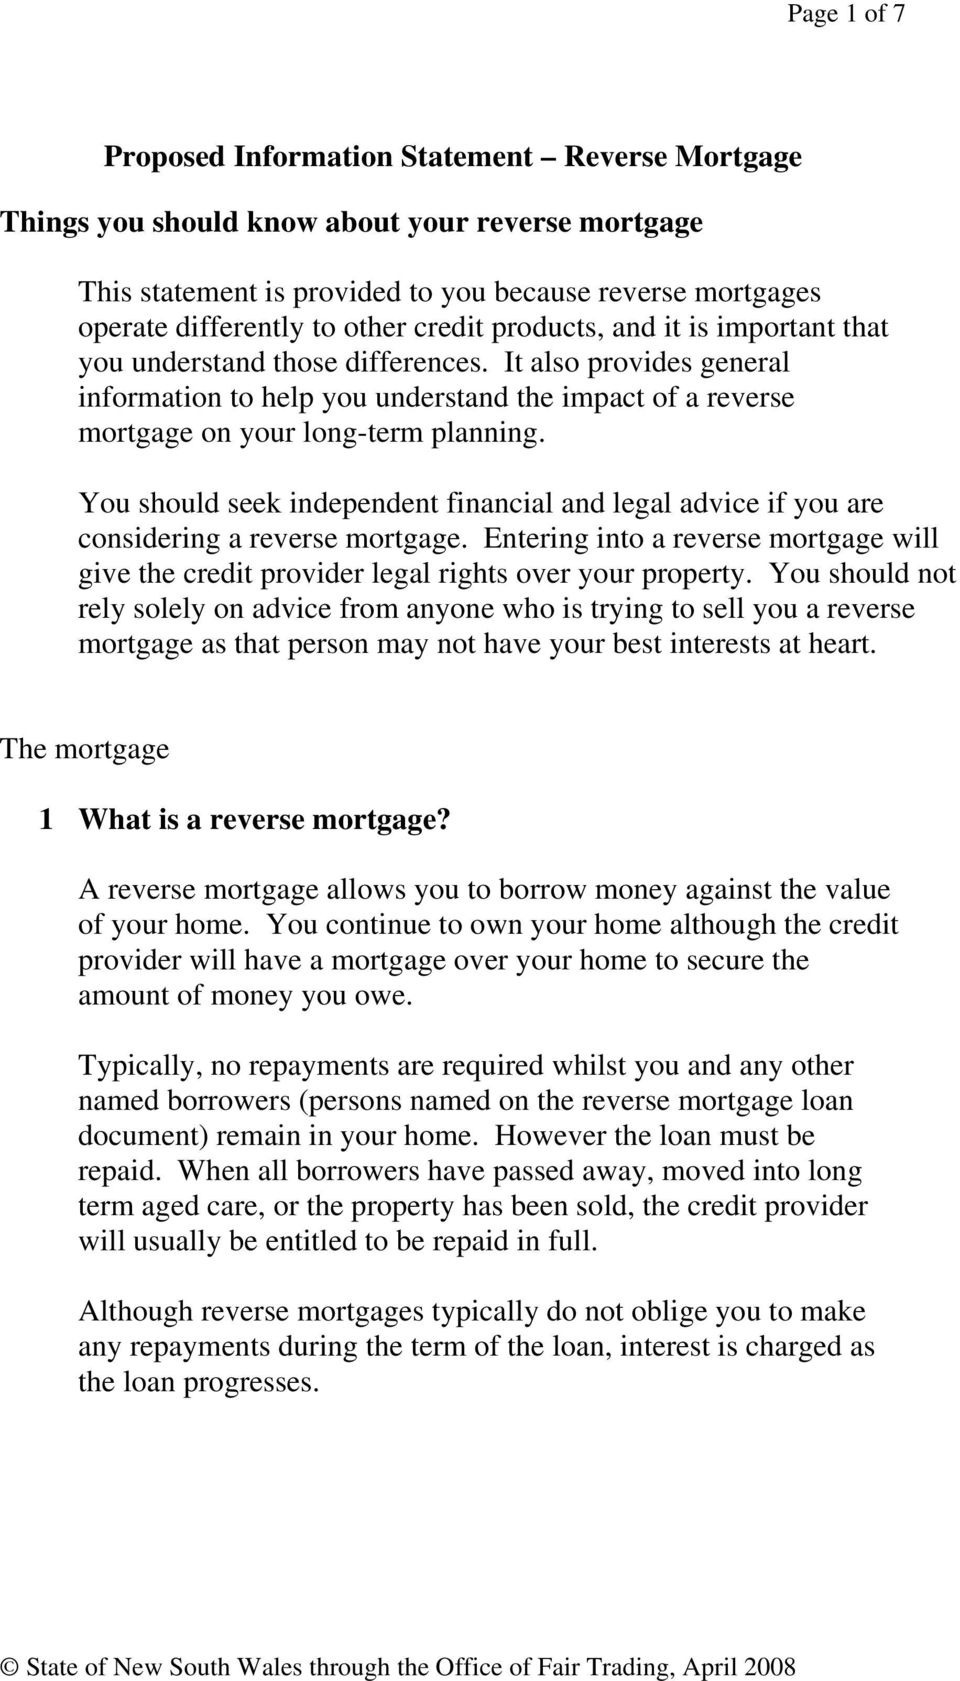 You should seek independent financial and legal advice if you are considering a reverse mortgage. Entering into a reverse mortgage will give the credit provider legal rights over your property.